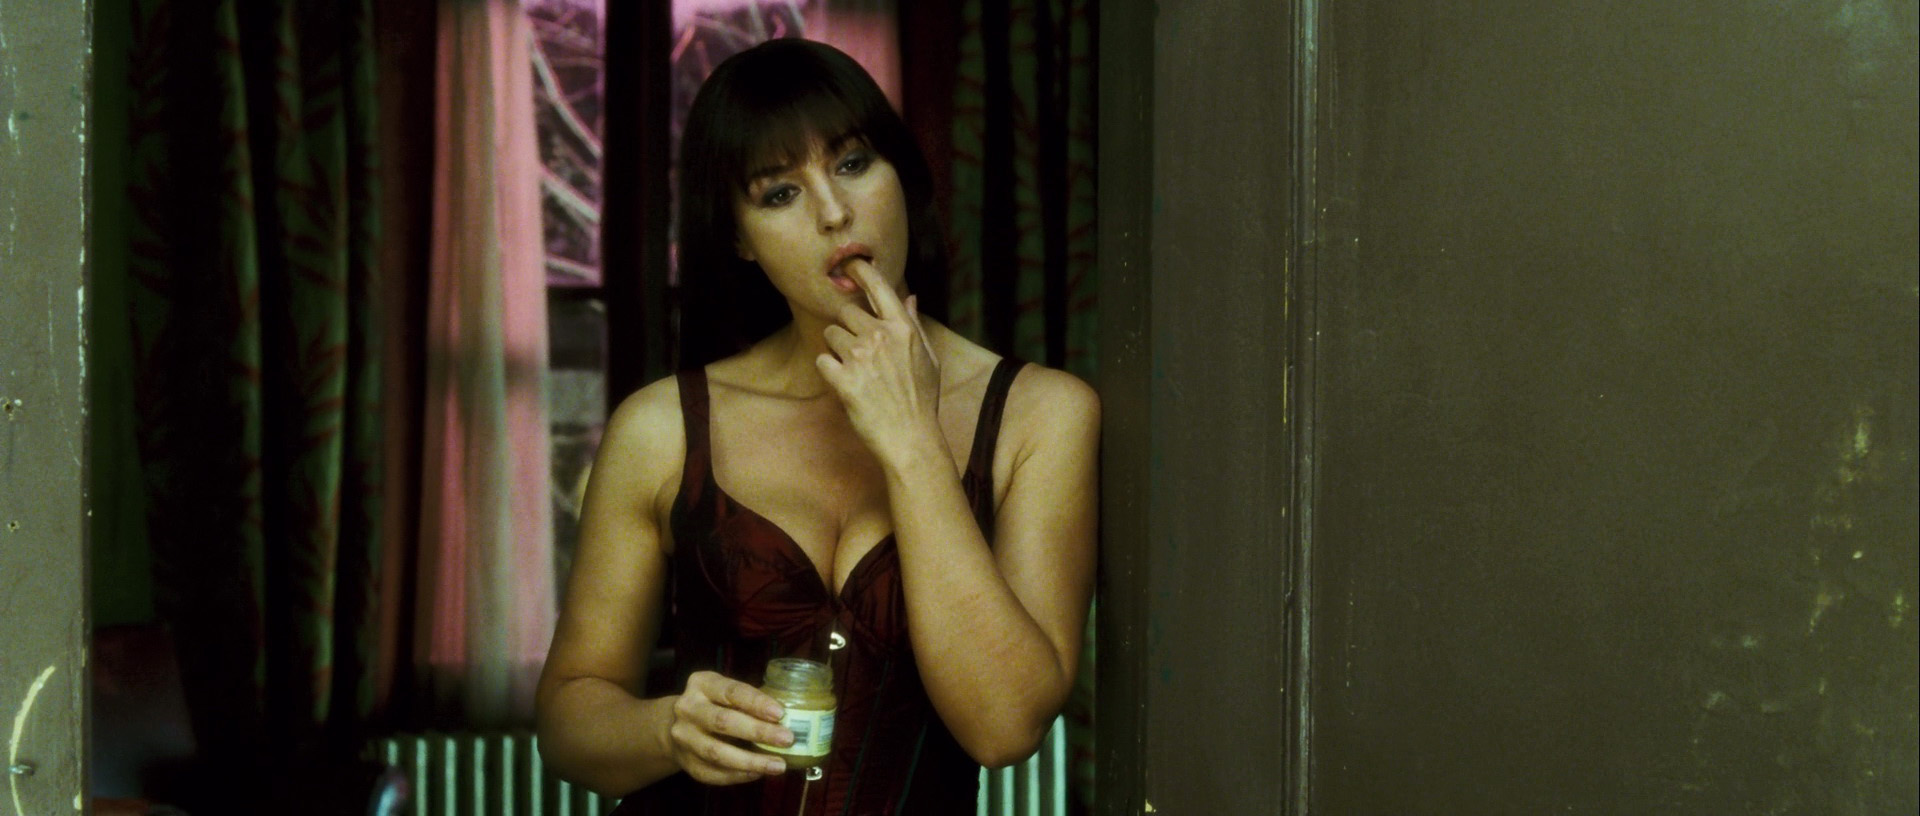 Monica Bellucci – Shoot 'Em Up (2007) HD 1080p